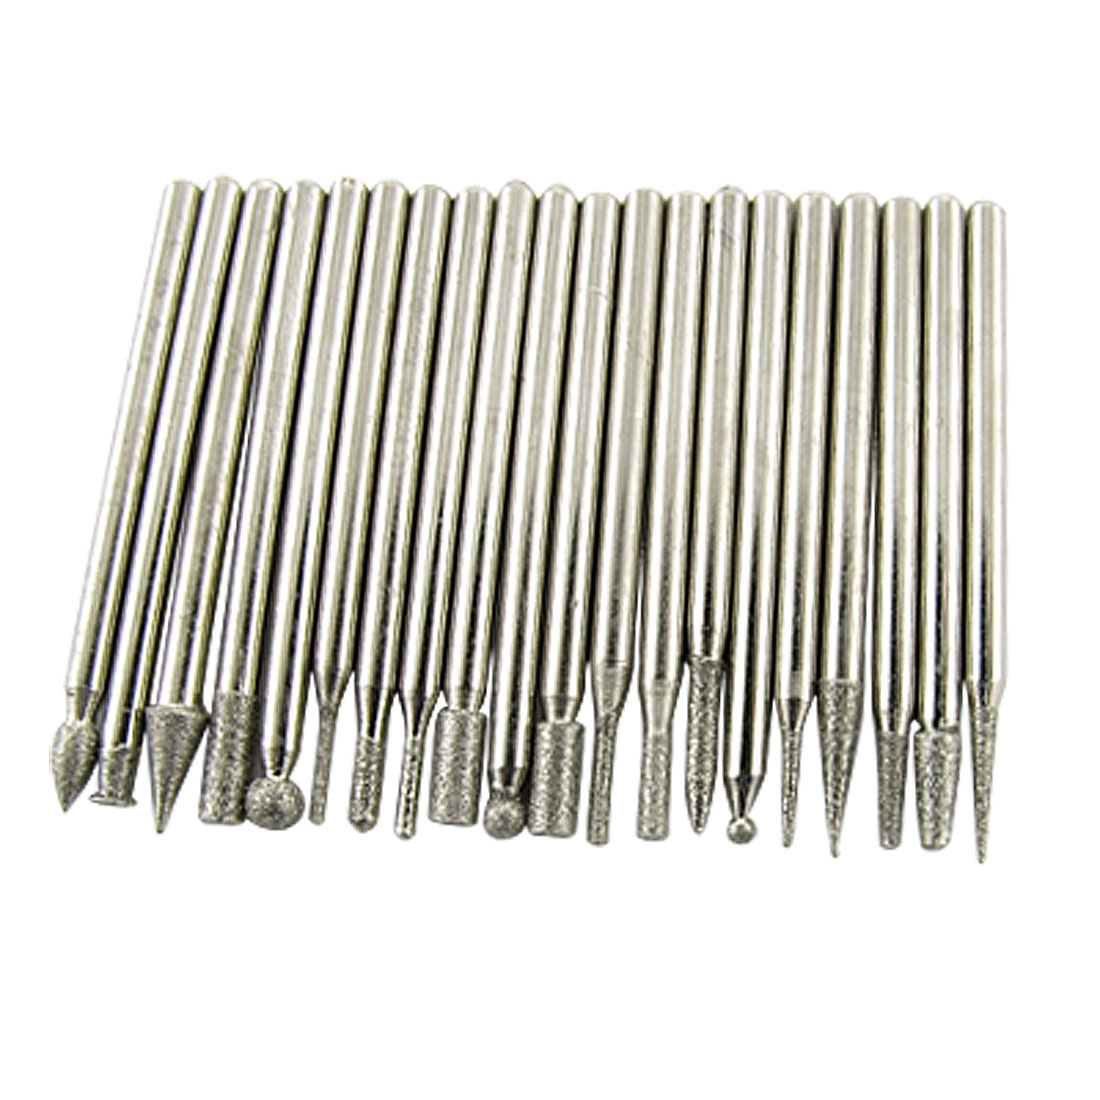 20 Pcs Diamond Coated Cylindrical Taper Ball Grinding Bits